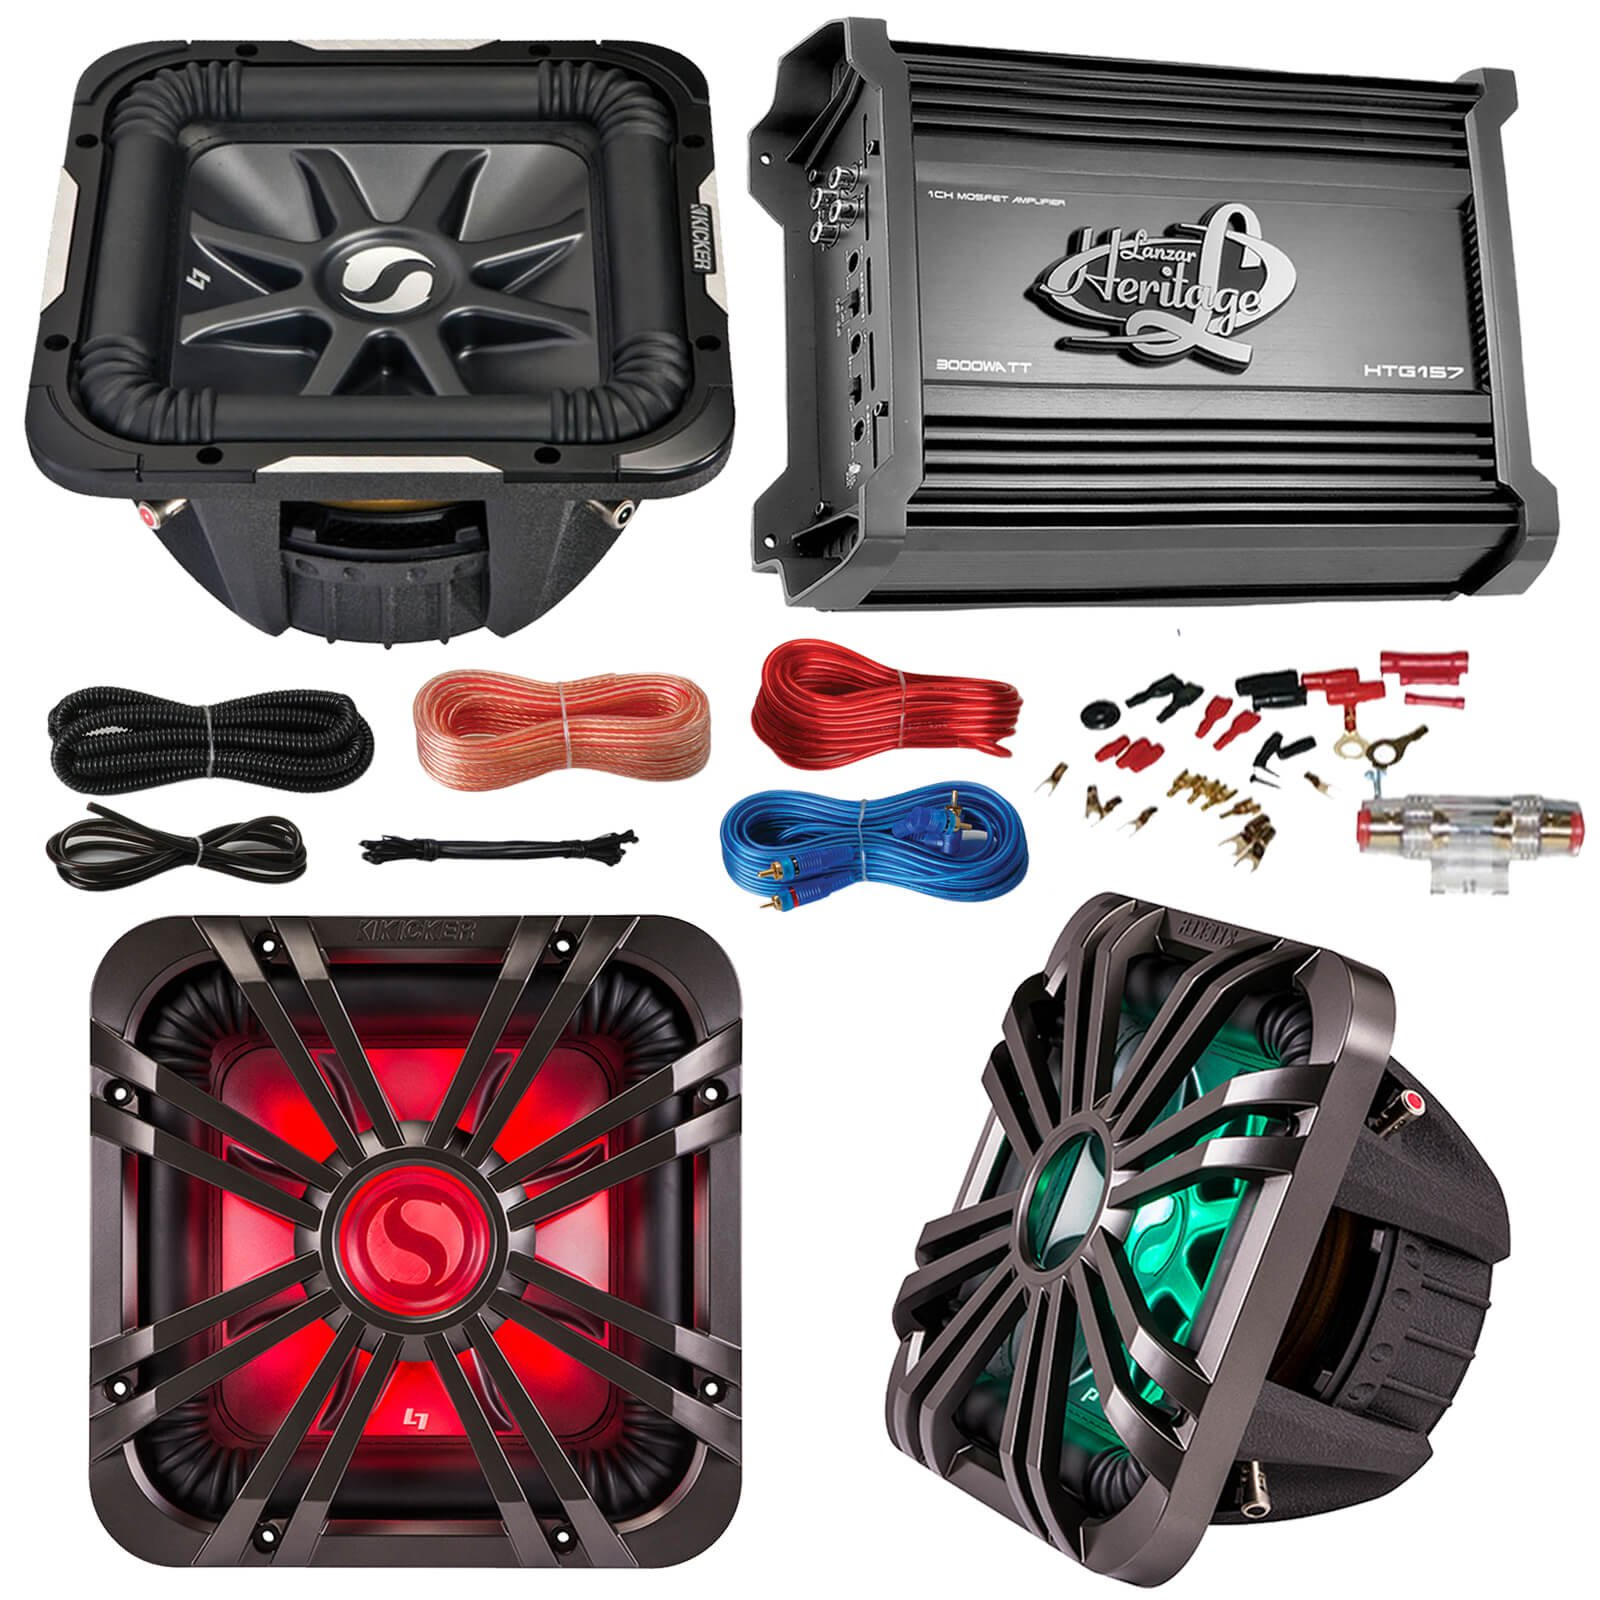 """Car Subwoofer And Amp Combo: Kicker 11S10L74 10"""" Audio Subwoofer Speaker + 10"""" Charcoal Grill With LED Lighting + Lanzar 2000W Mono Block Stereo Amplifier + 8 Gauge Marine Amplifier Installation Kit"""